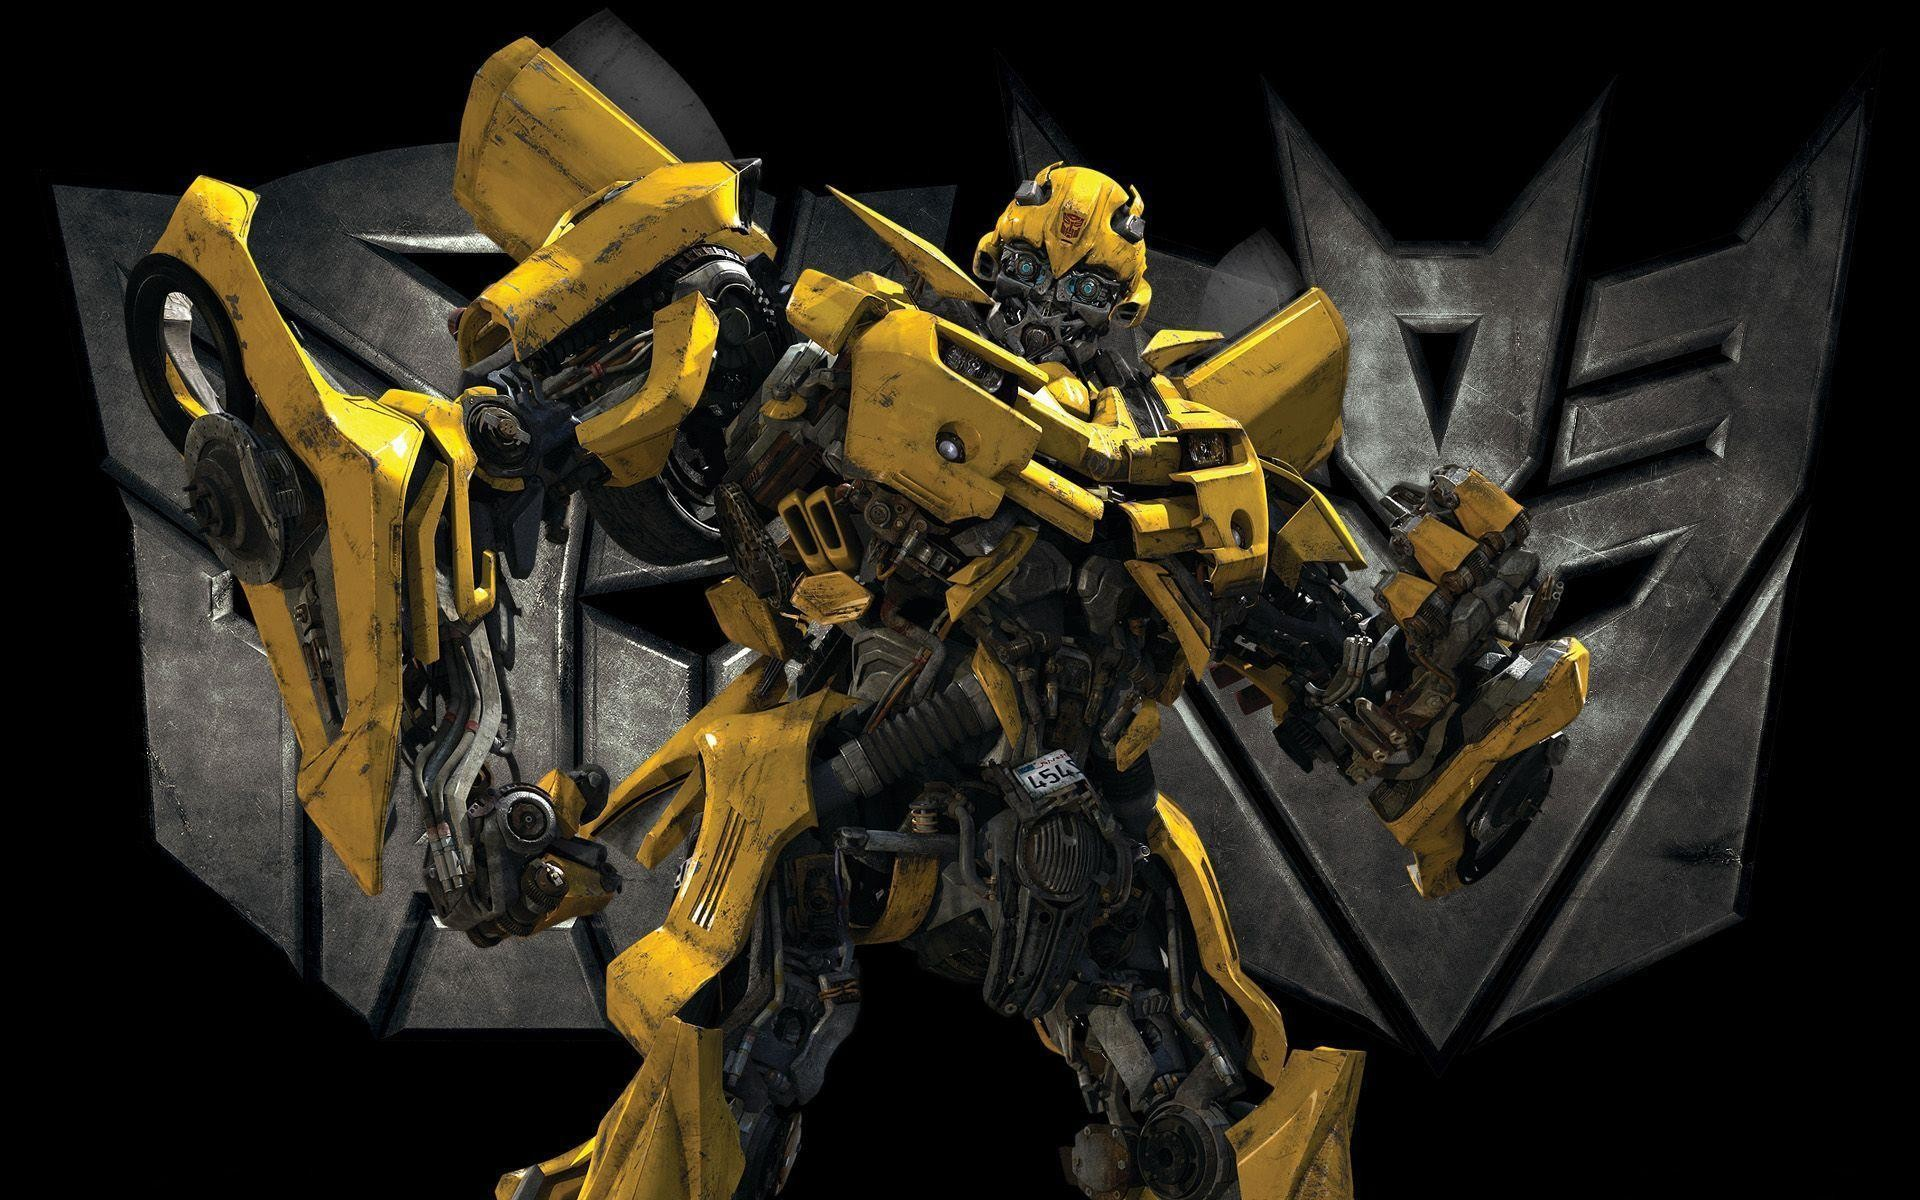 Transformers Bumblebee Wallpapers – Full HD wallpaper search